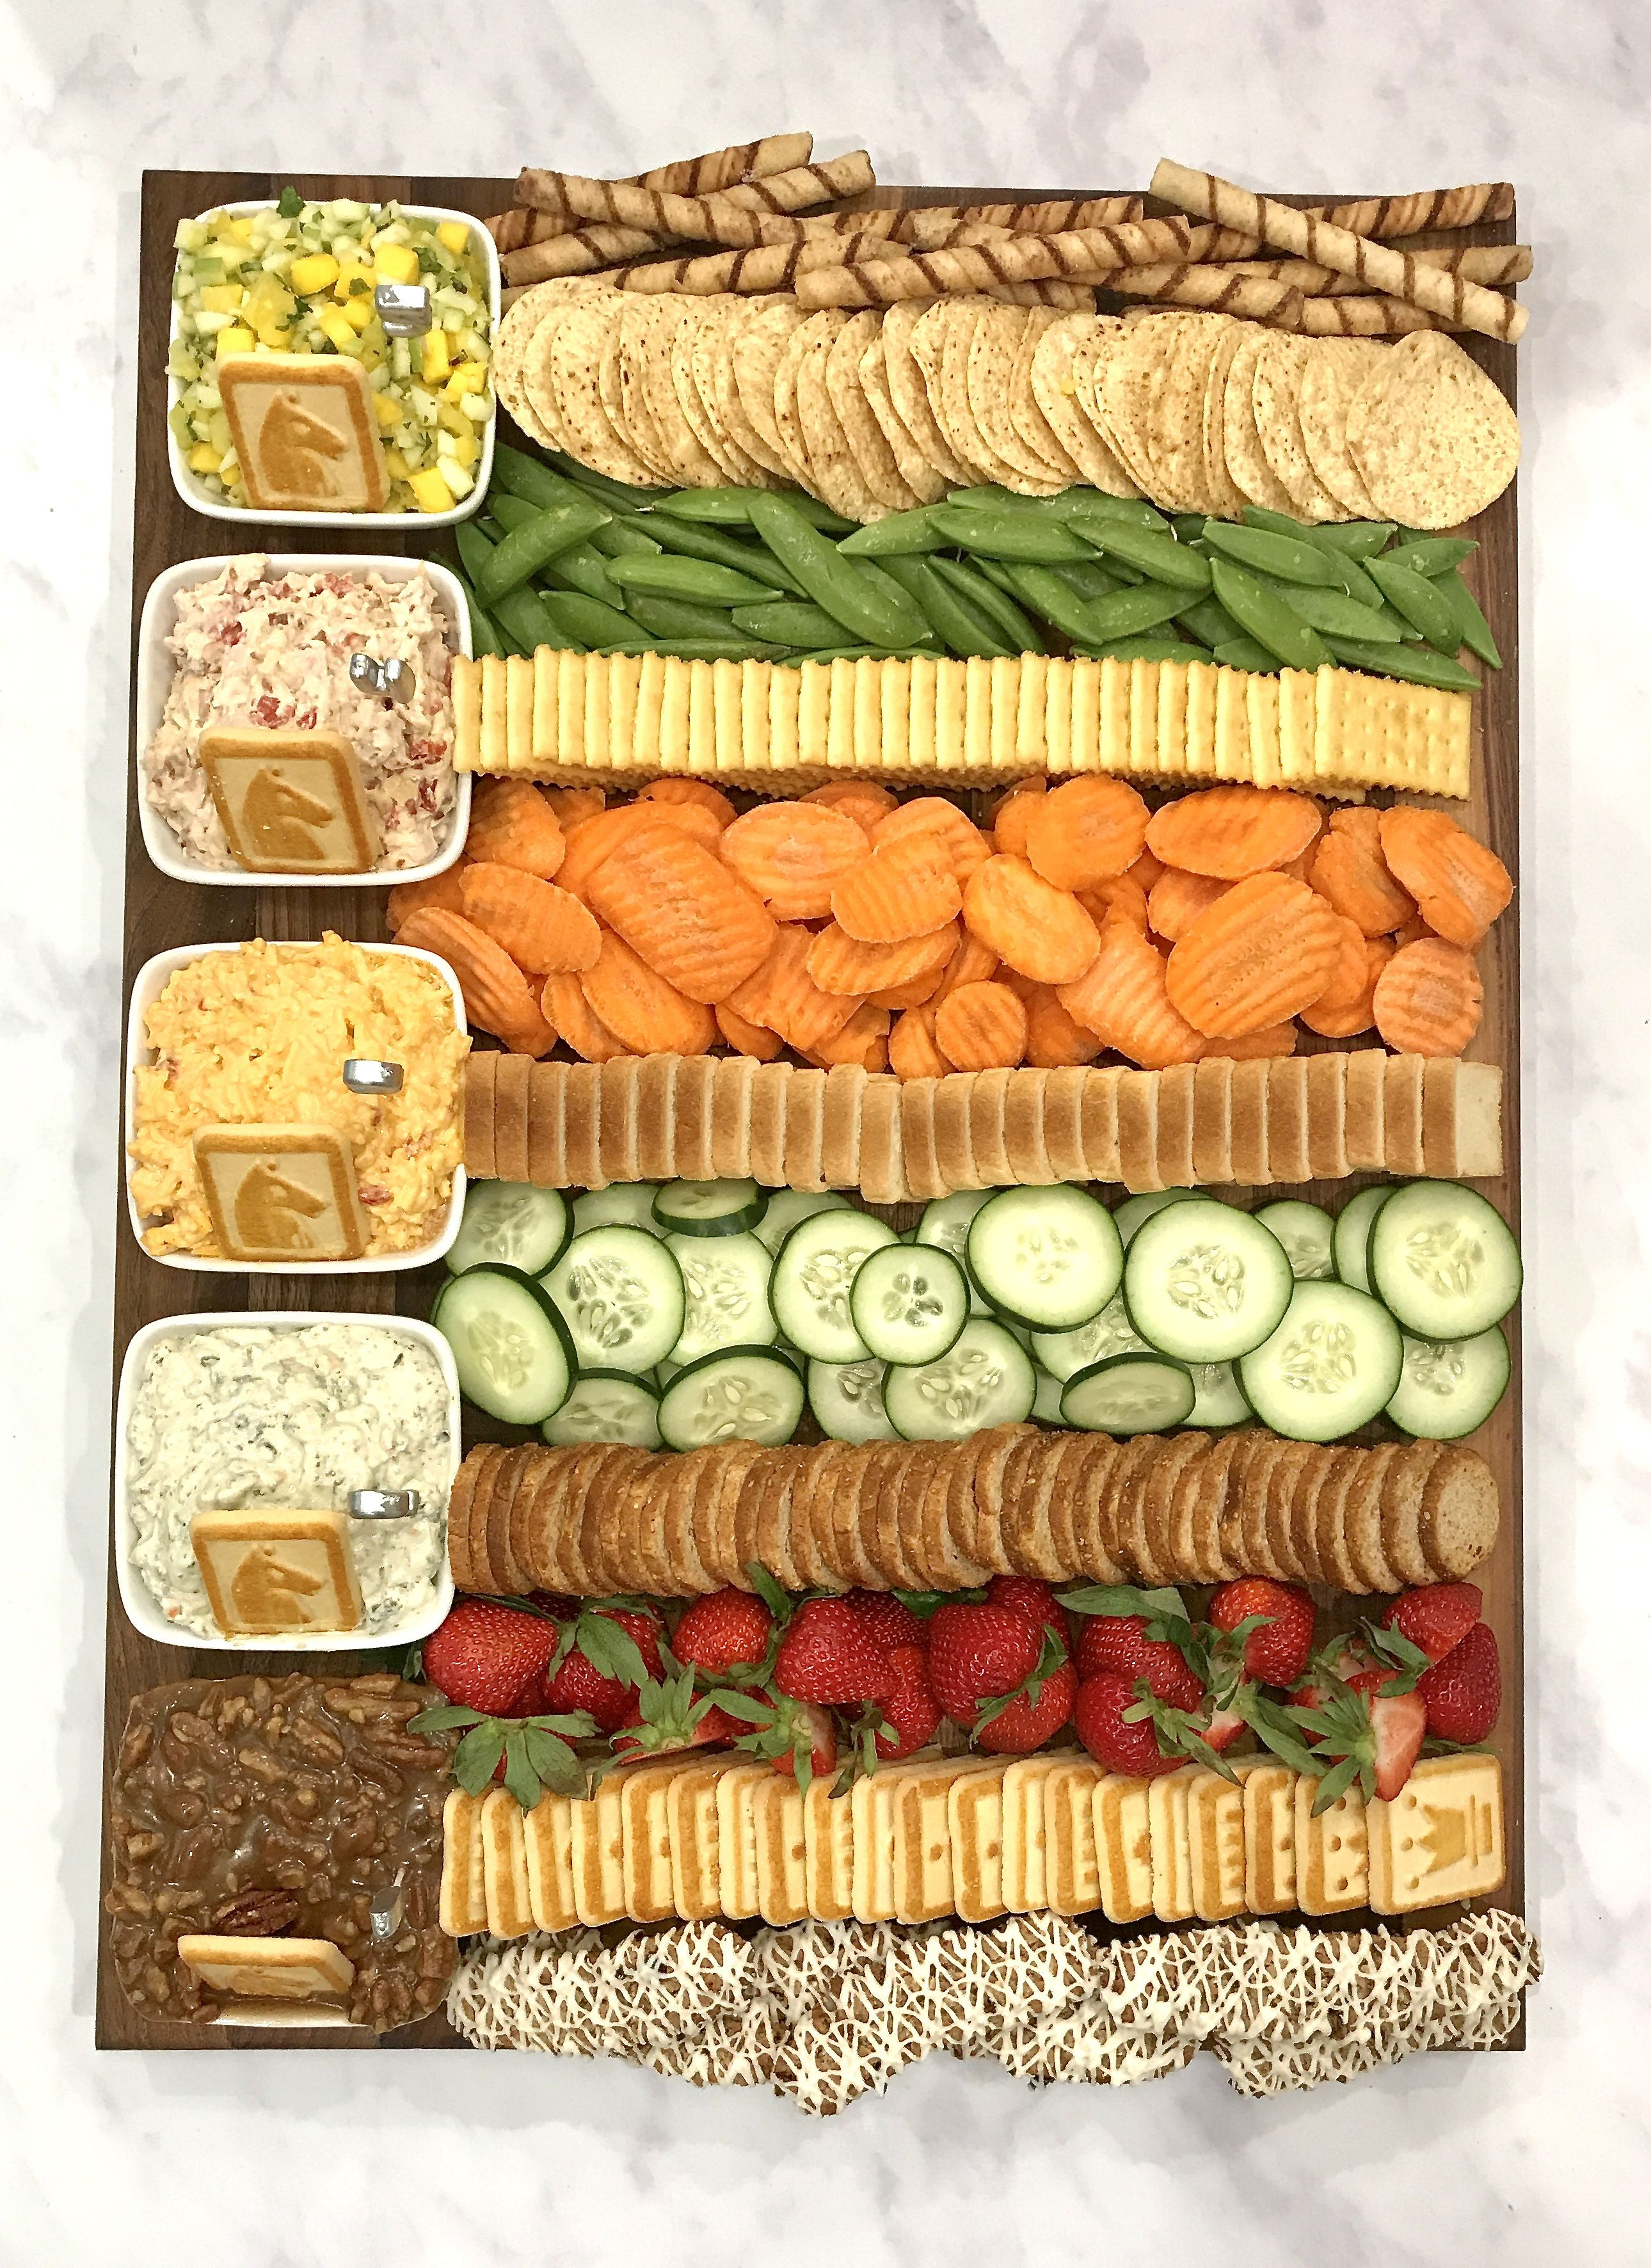 Kentucky Derby Dip Board The BakerMama Food for a